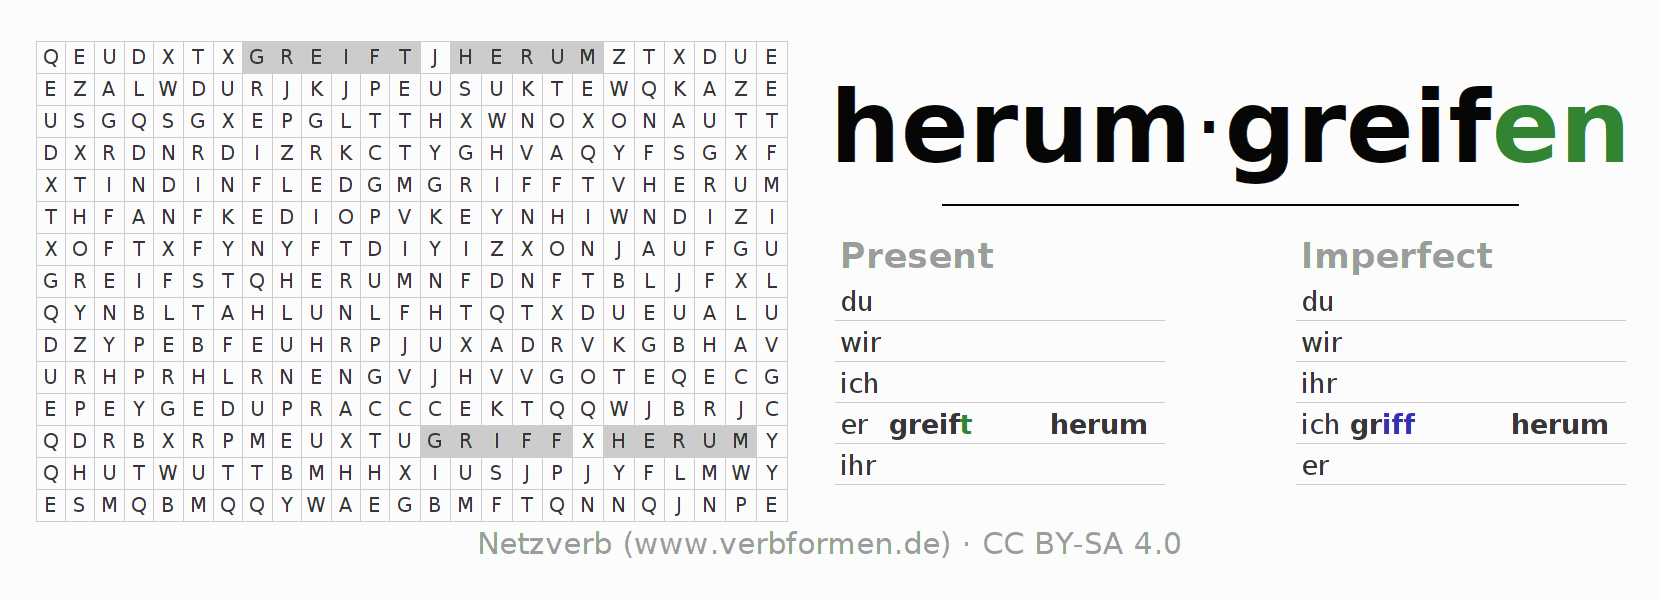 Word search puzzle for the conjugation of the verb herumgreifen